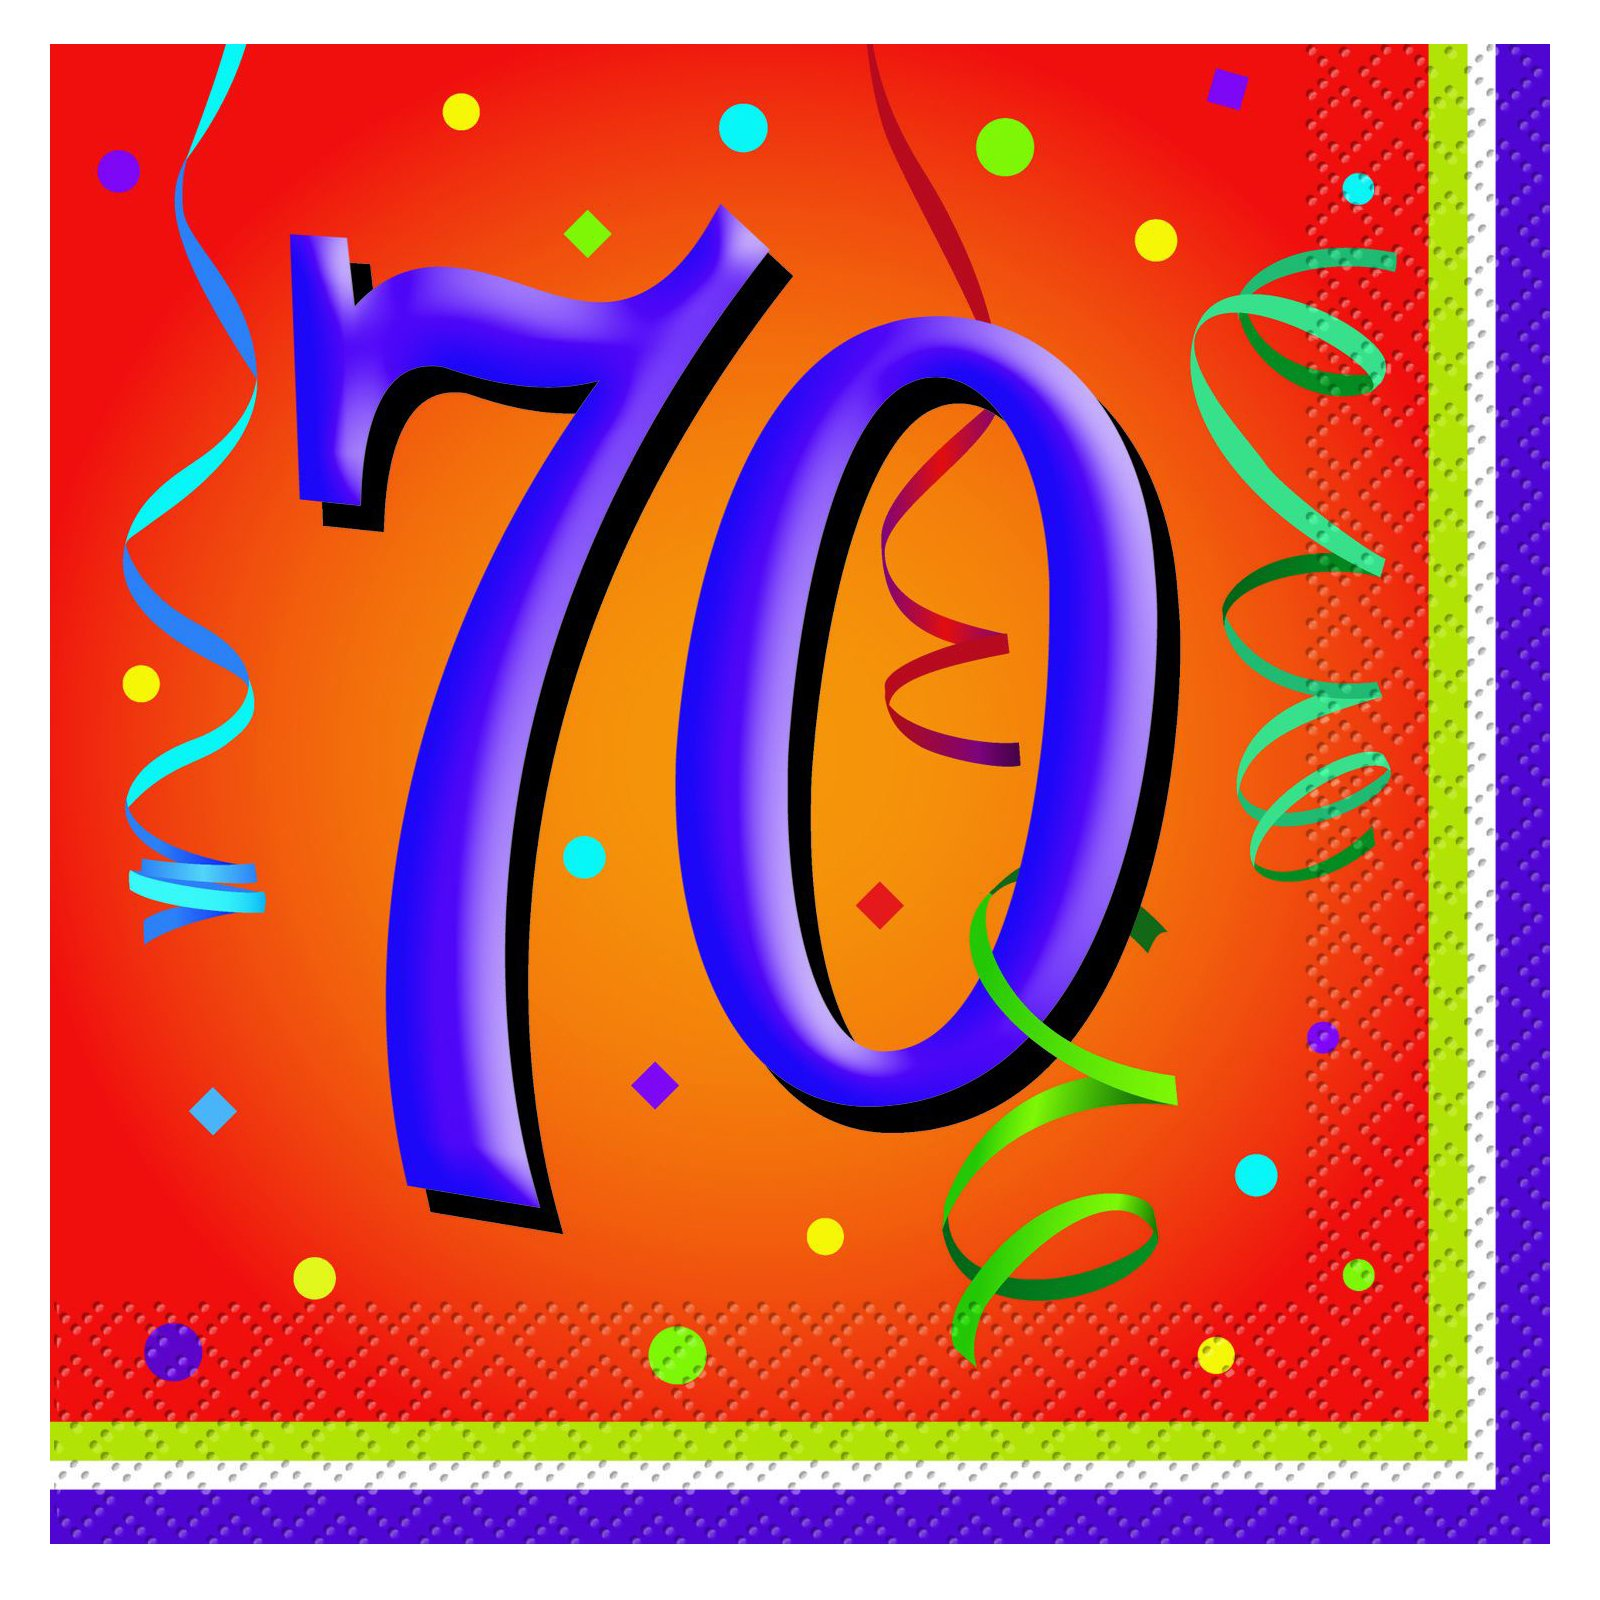 Lively Birthday 70 - Lunch Napkins (16 count)